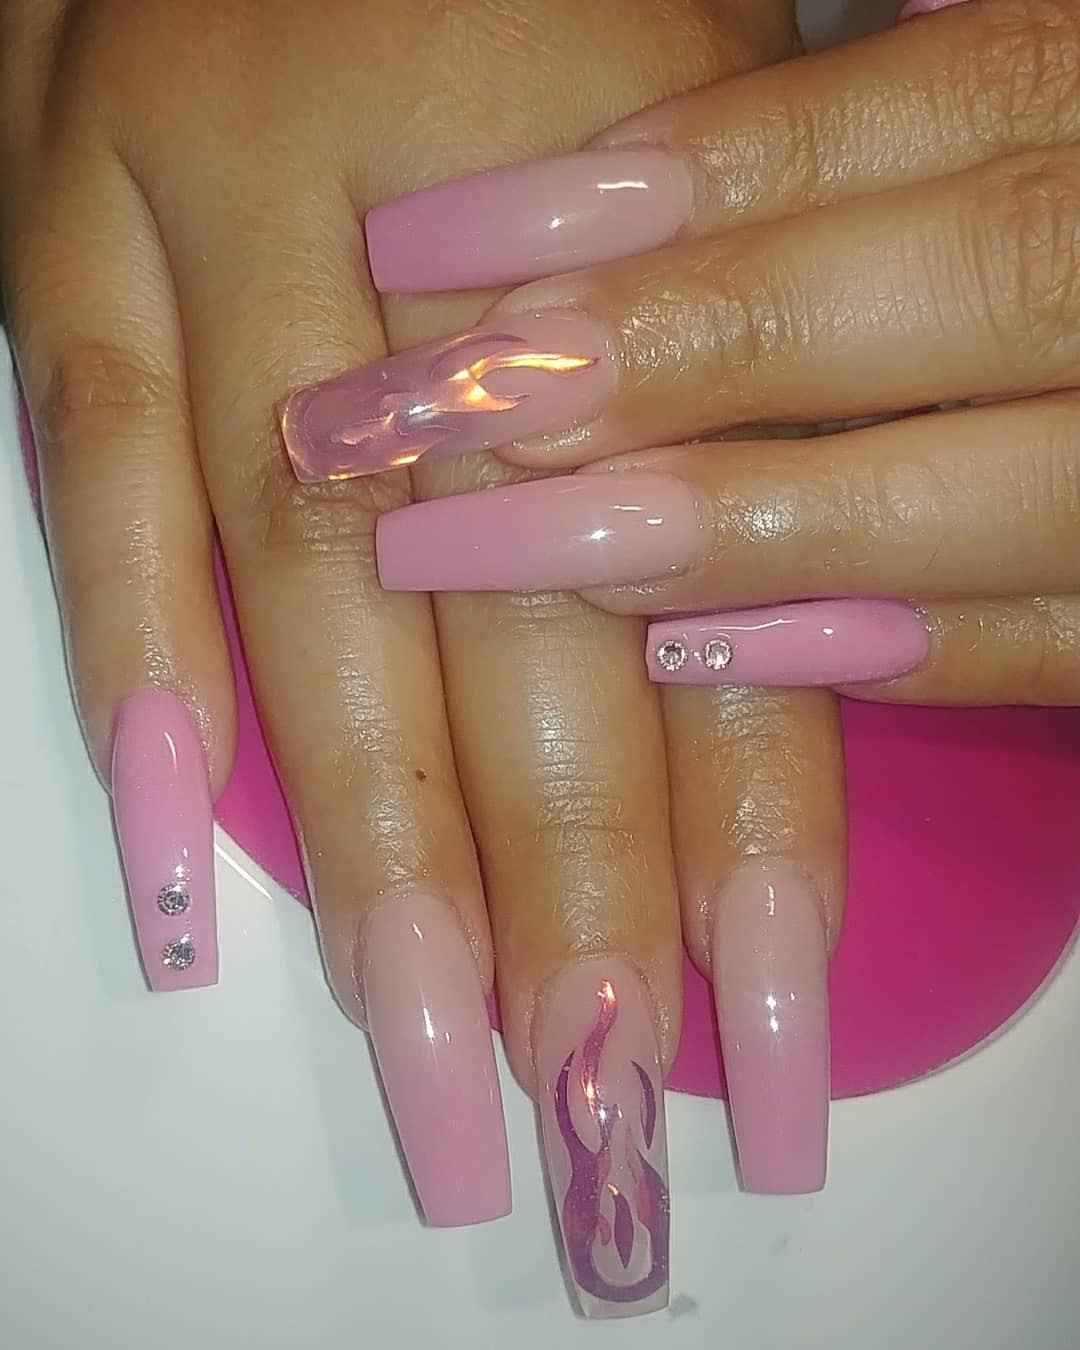 Pink Ombre Coffin Nails  Designs,ombre coffin nails,Pink Ombre Coffin Nails, Ombre Coffin Nails,Coffin Nails,Pink Nails